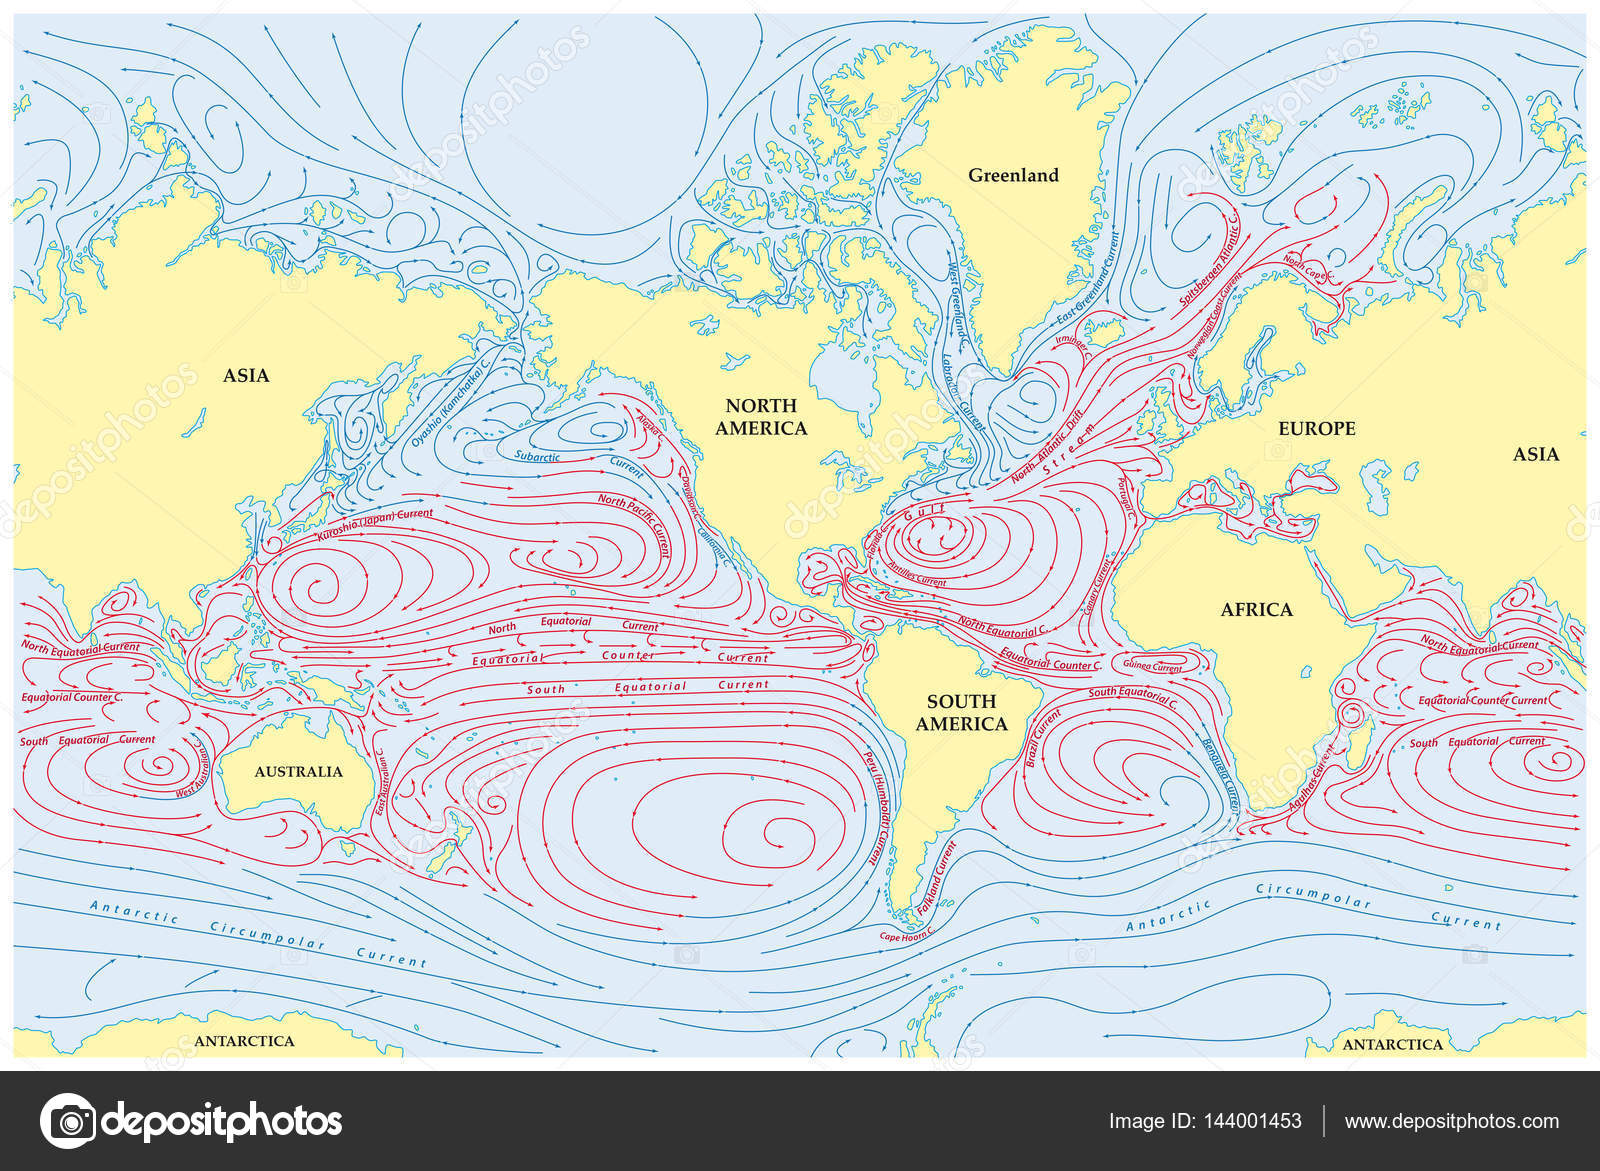 World Map With Currents.World Map Of All Sea Currents Stock Photo C Lesniewski 144001453